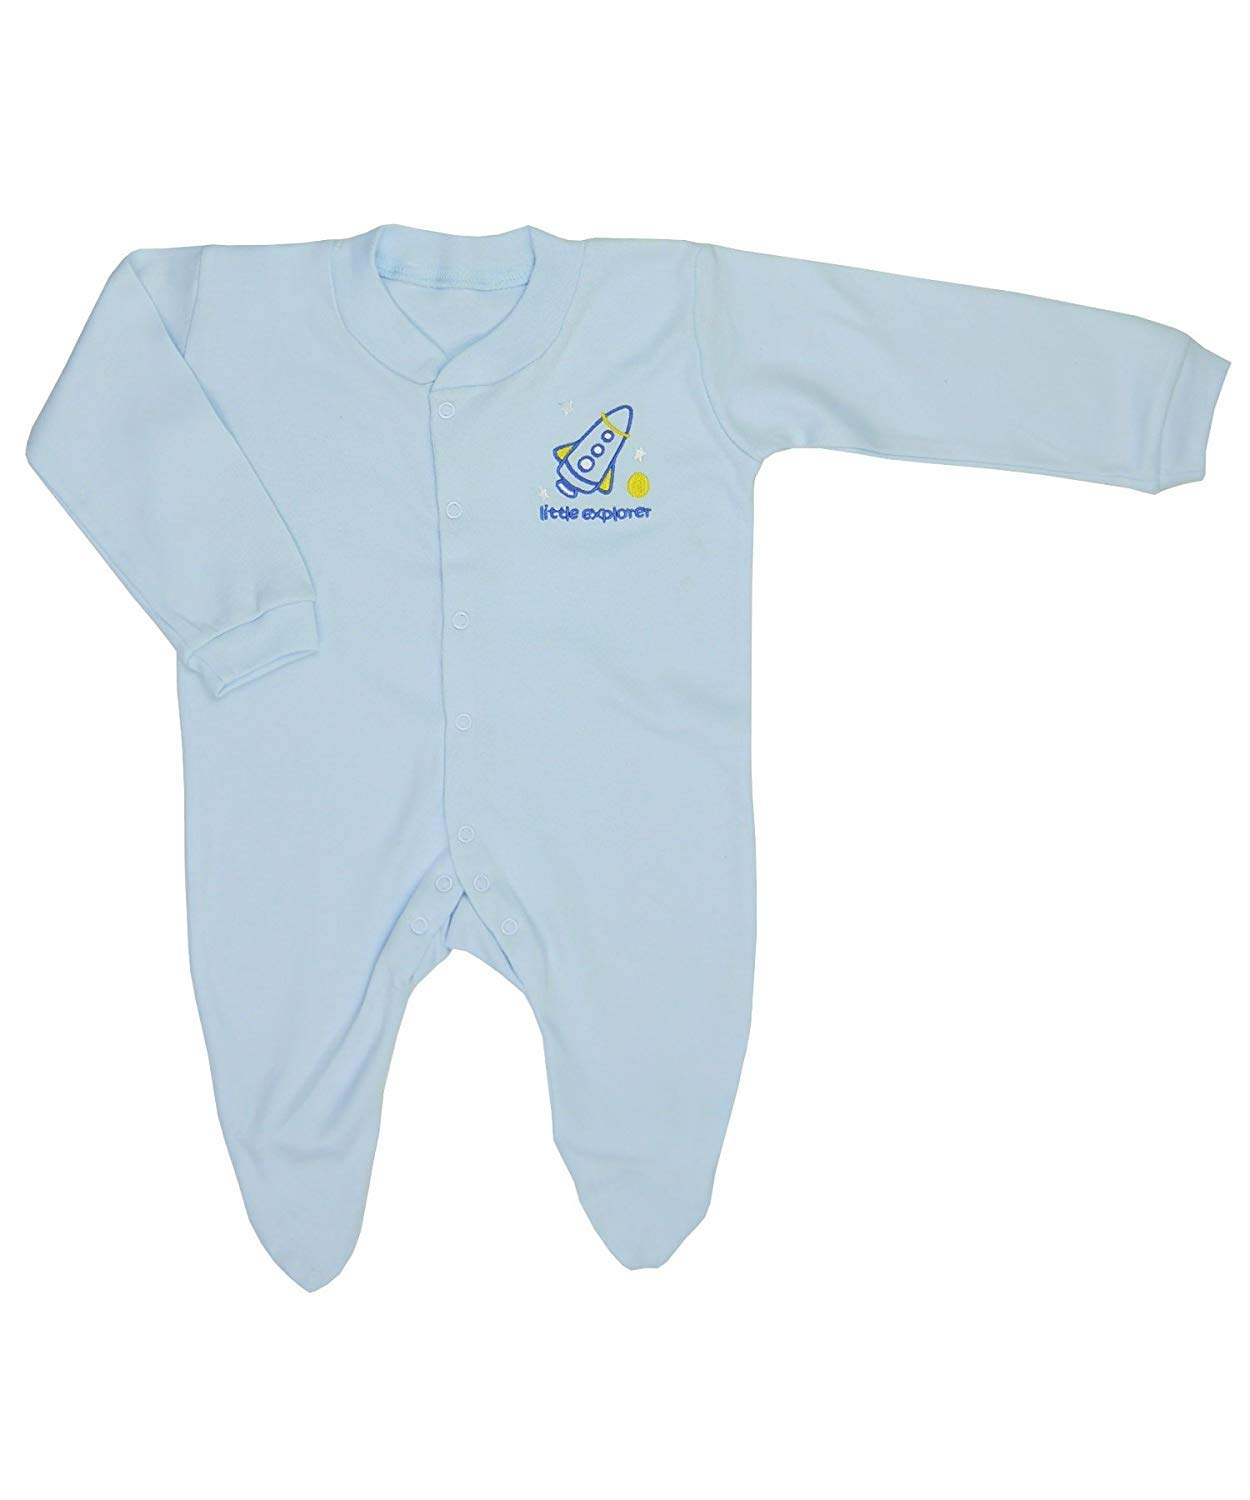 12-18 Months 2 Pack Boys Girls Baby Shower Blue Baby Grow Cute Design 100/% Cotton Nursery Time Baby Sleepsuits